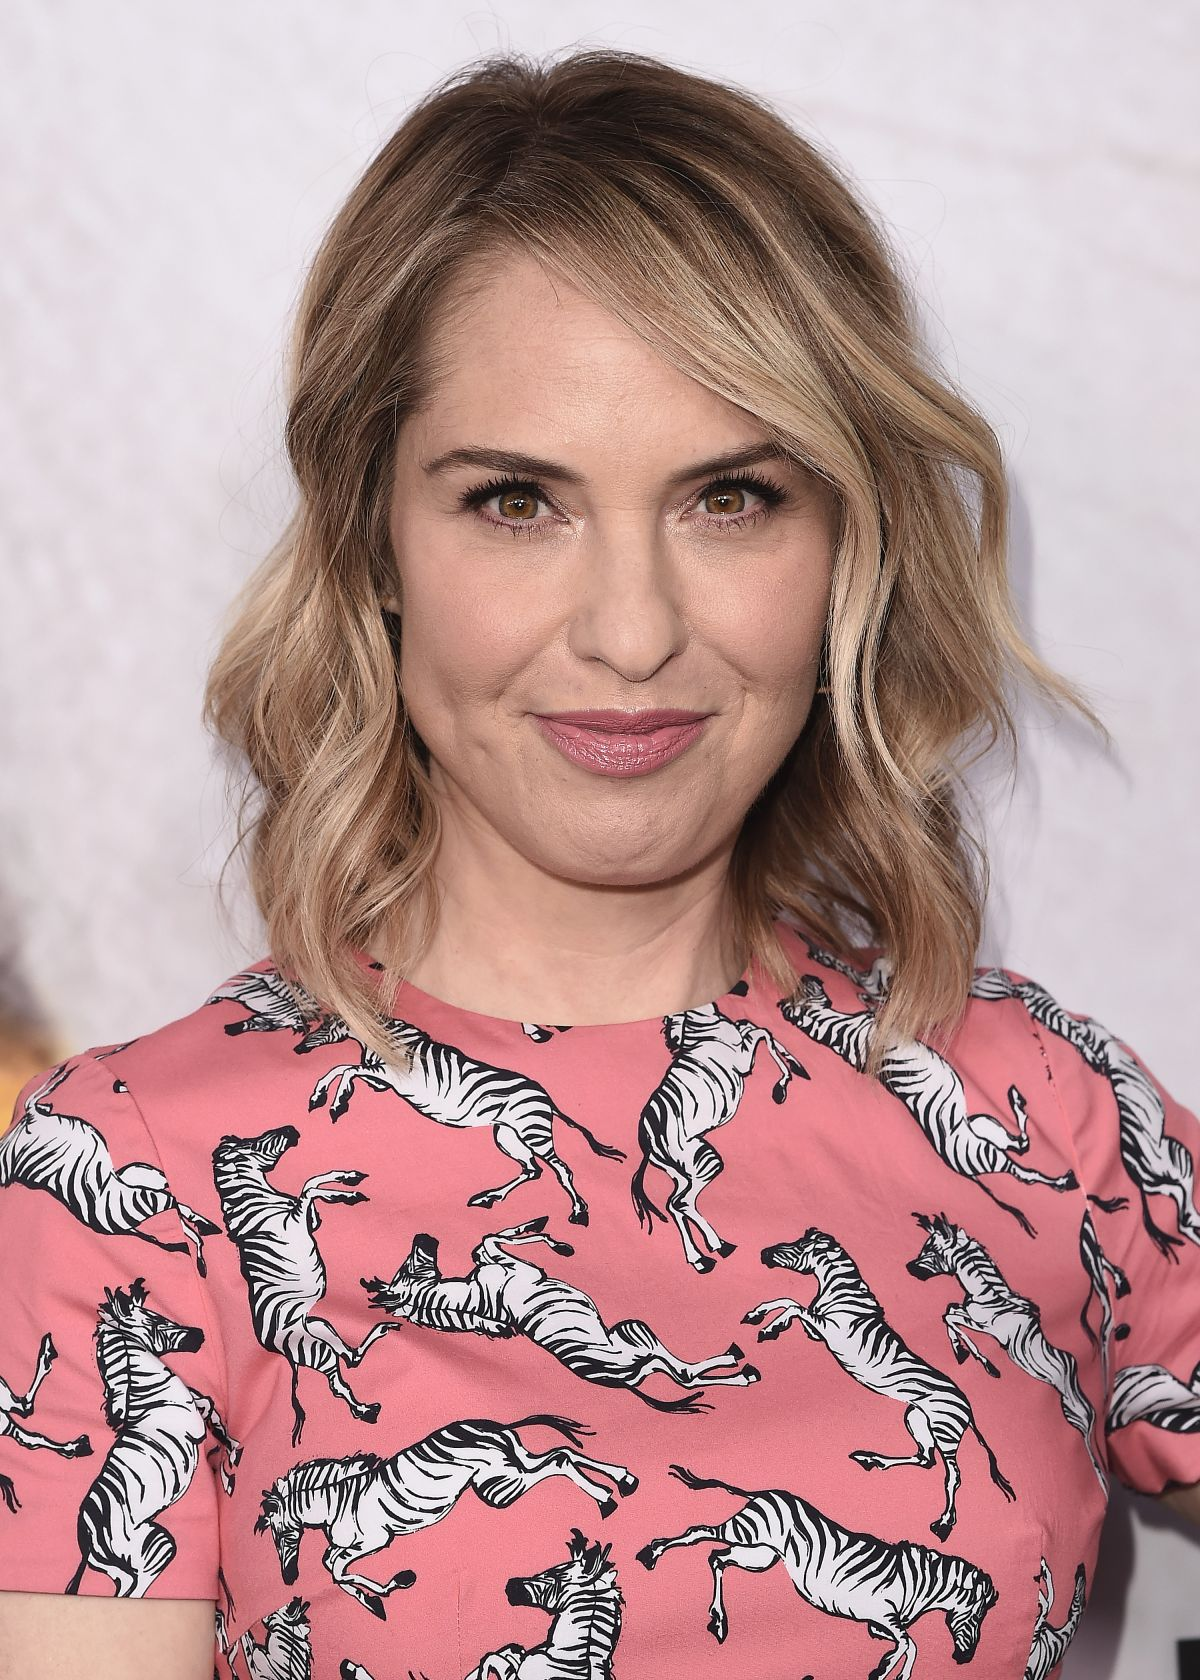 Leslie Grossman nude photos 2019